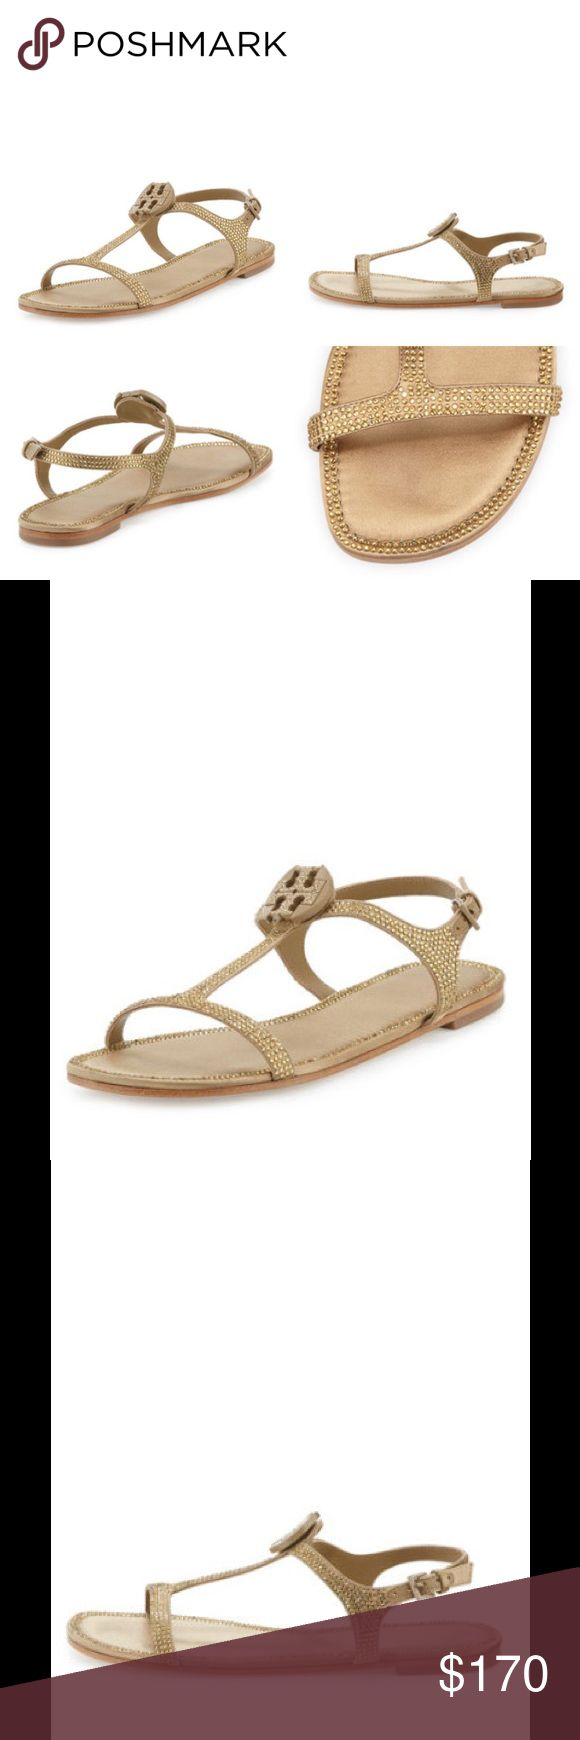 "Tory Burch Delphine Crystal Flat Logo Sandal Tory Burch crystal-embellished satin sandal. 0.5"" flat heel. Open toe. T-strap vamp with logo detail. Adjustable ankle strap. Leather outsole. ""Dephine"" is imported. Tory Burch Shoes Sandals"